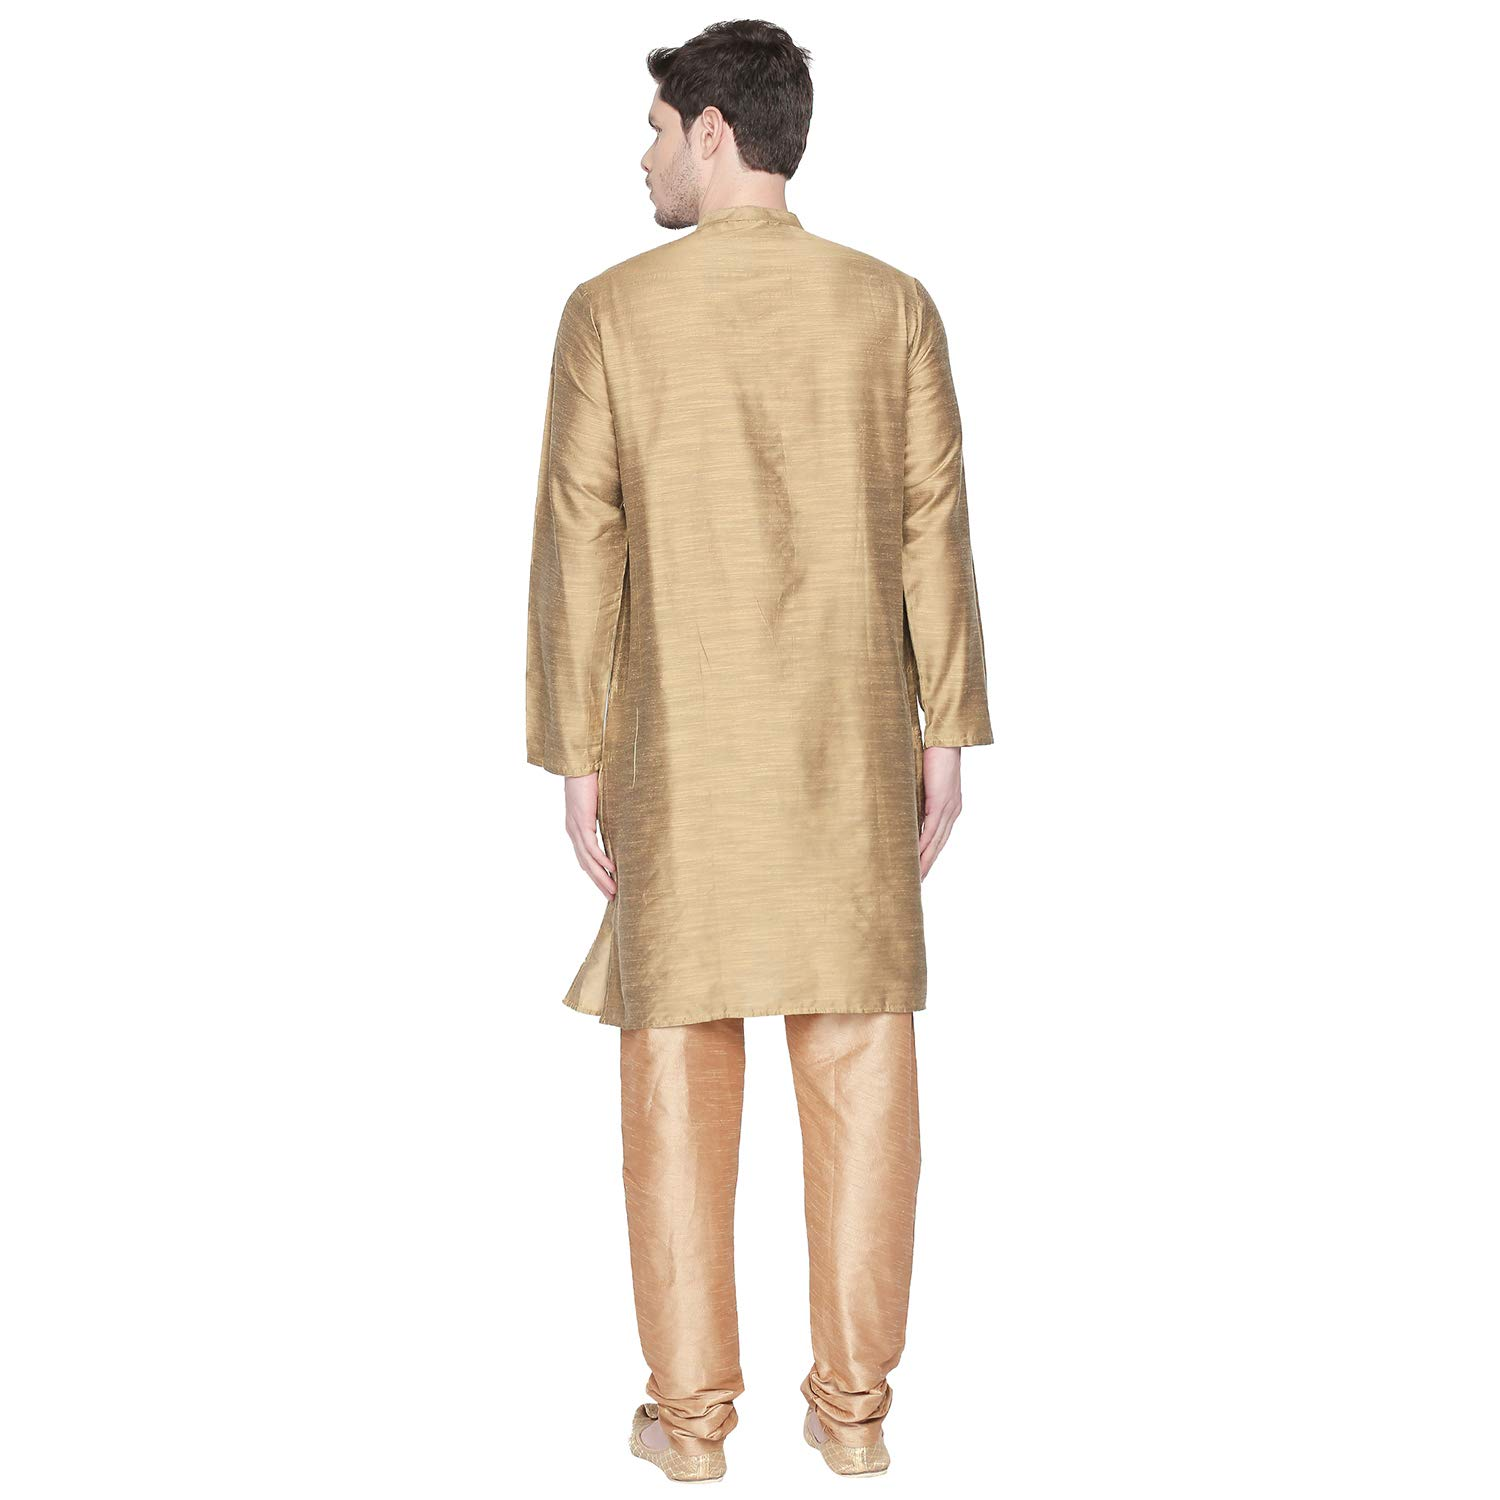 Buy Indus Route Clothes by Pantaloons and Save Upto 45% For Men's Kurta Online